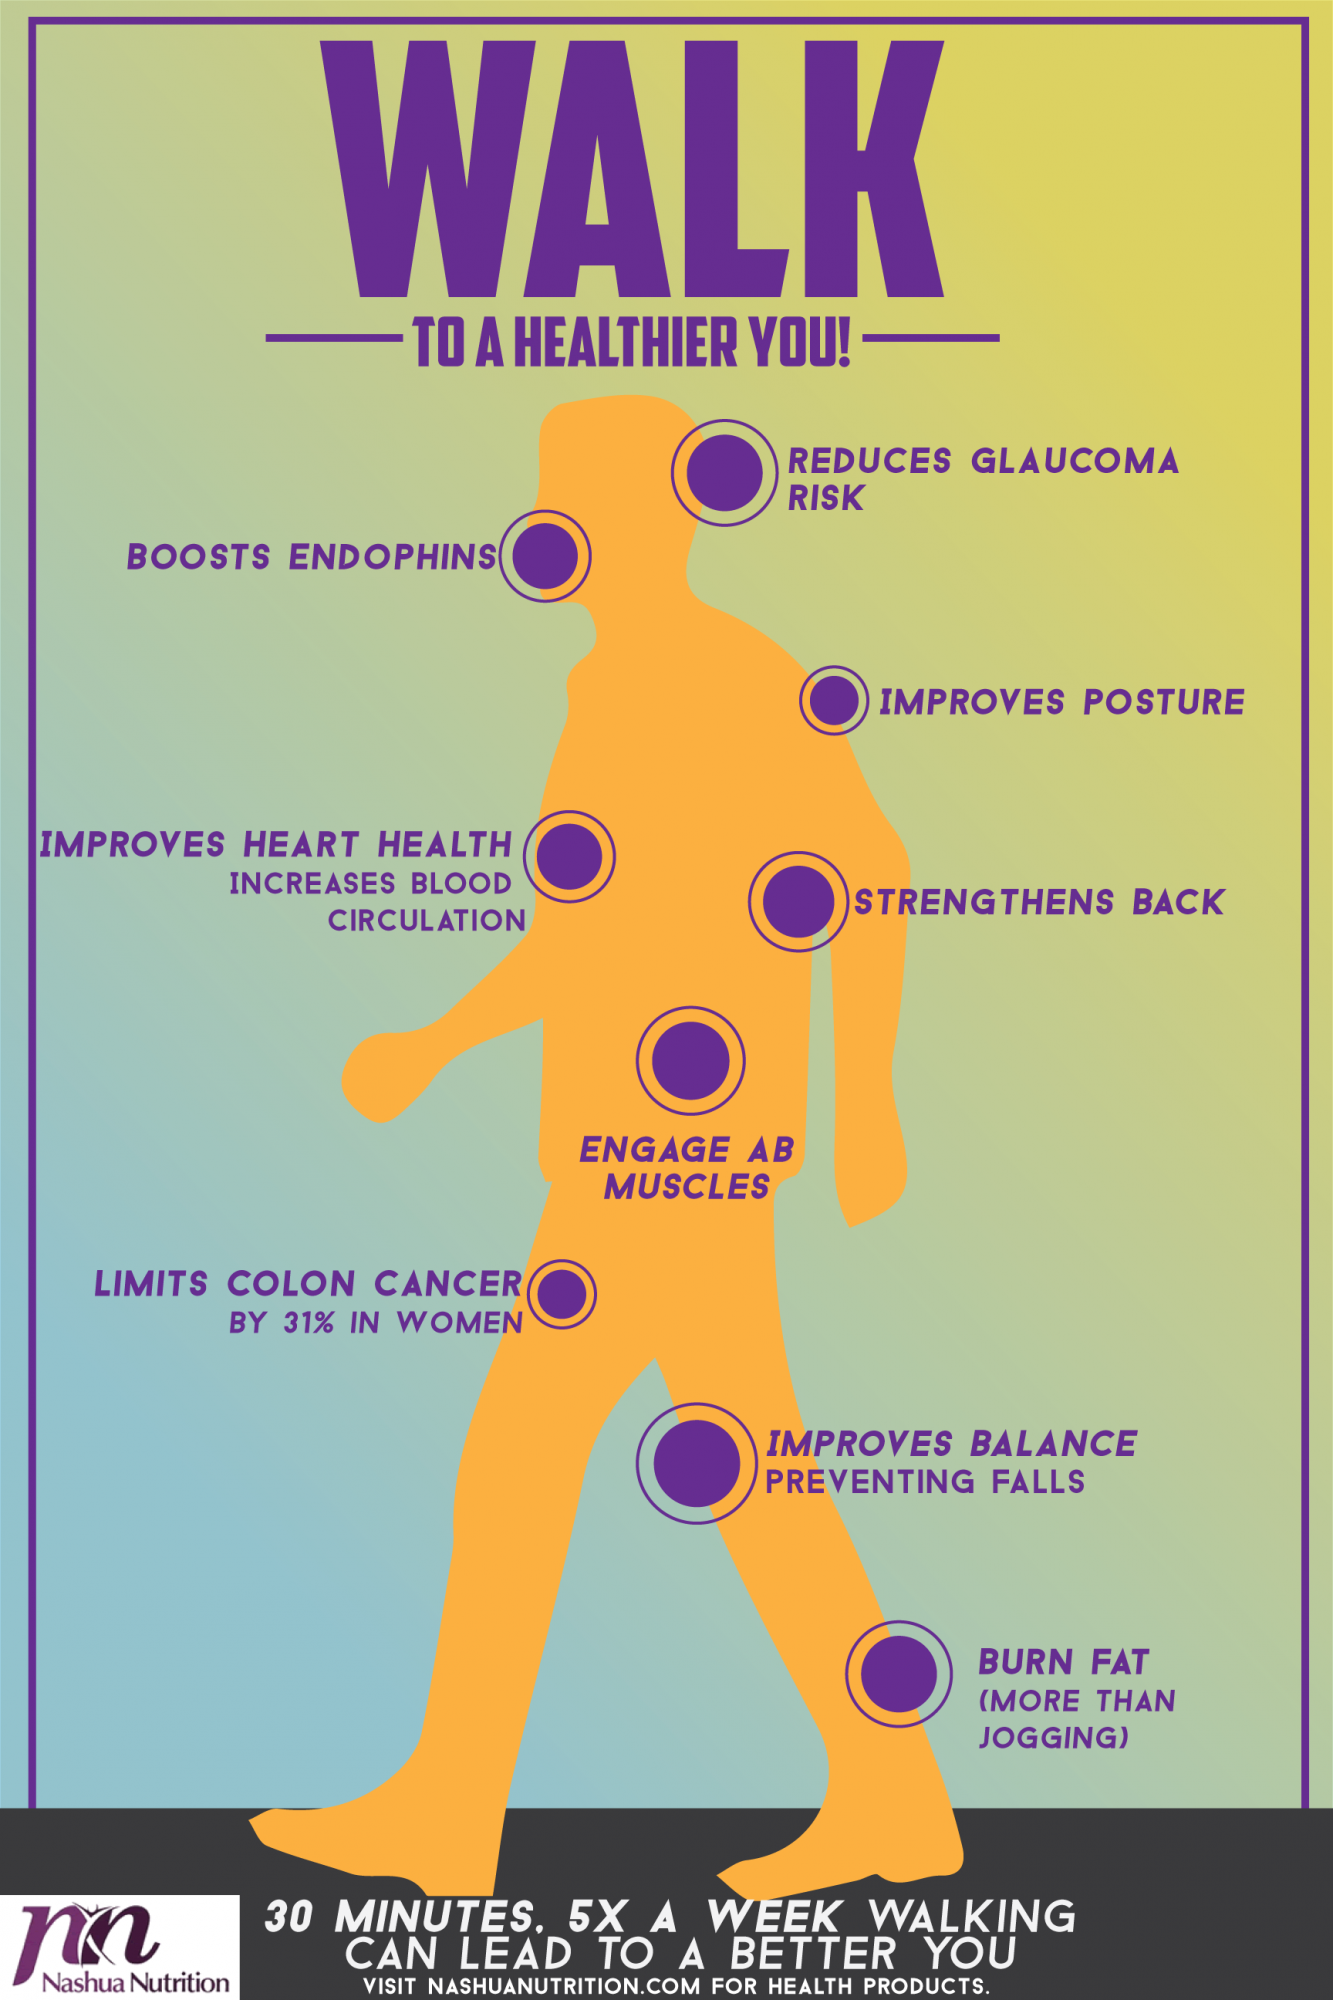 walking for the health Physical inactivity causes approximately 17% of premature mortality in the uk  walking offers a promising method for lowering risk of.